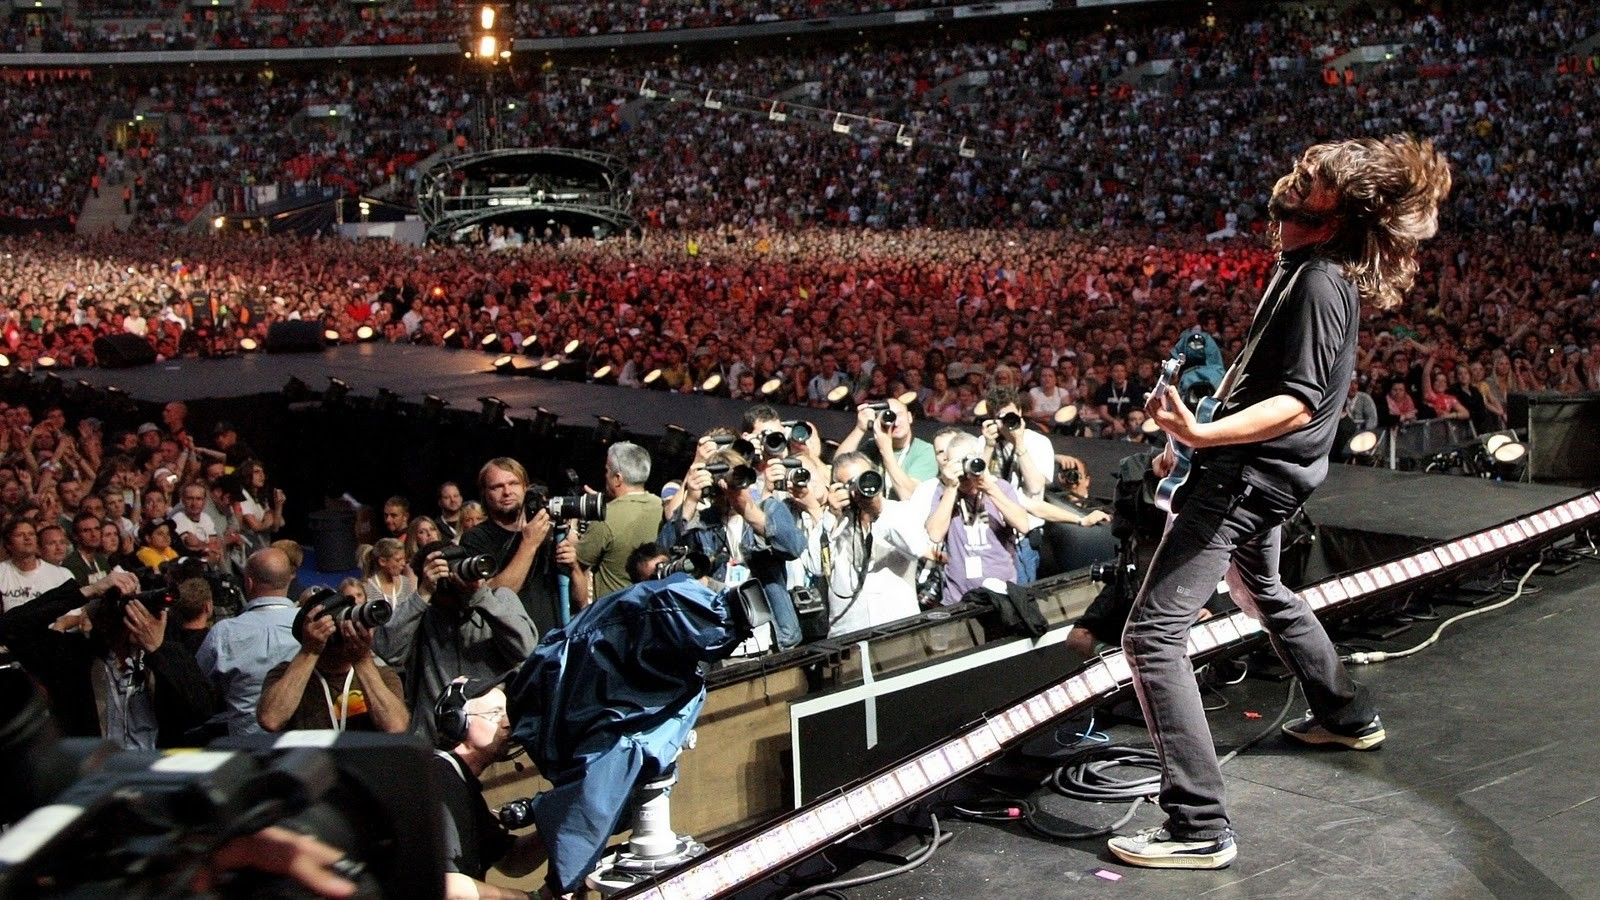 foo-fighters-live-at-wembley-stadium-original